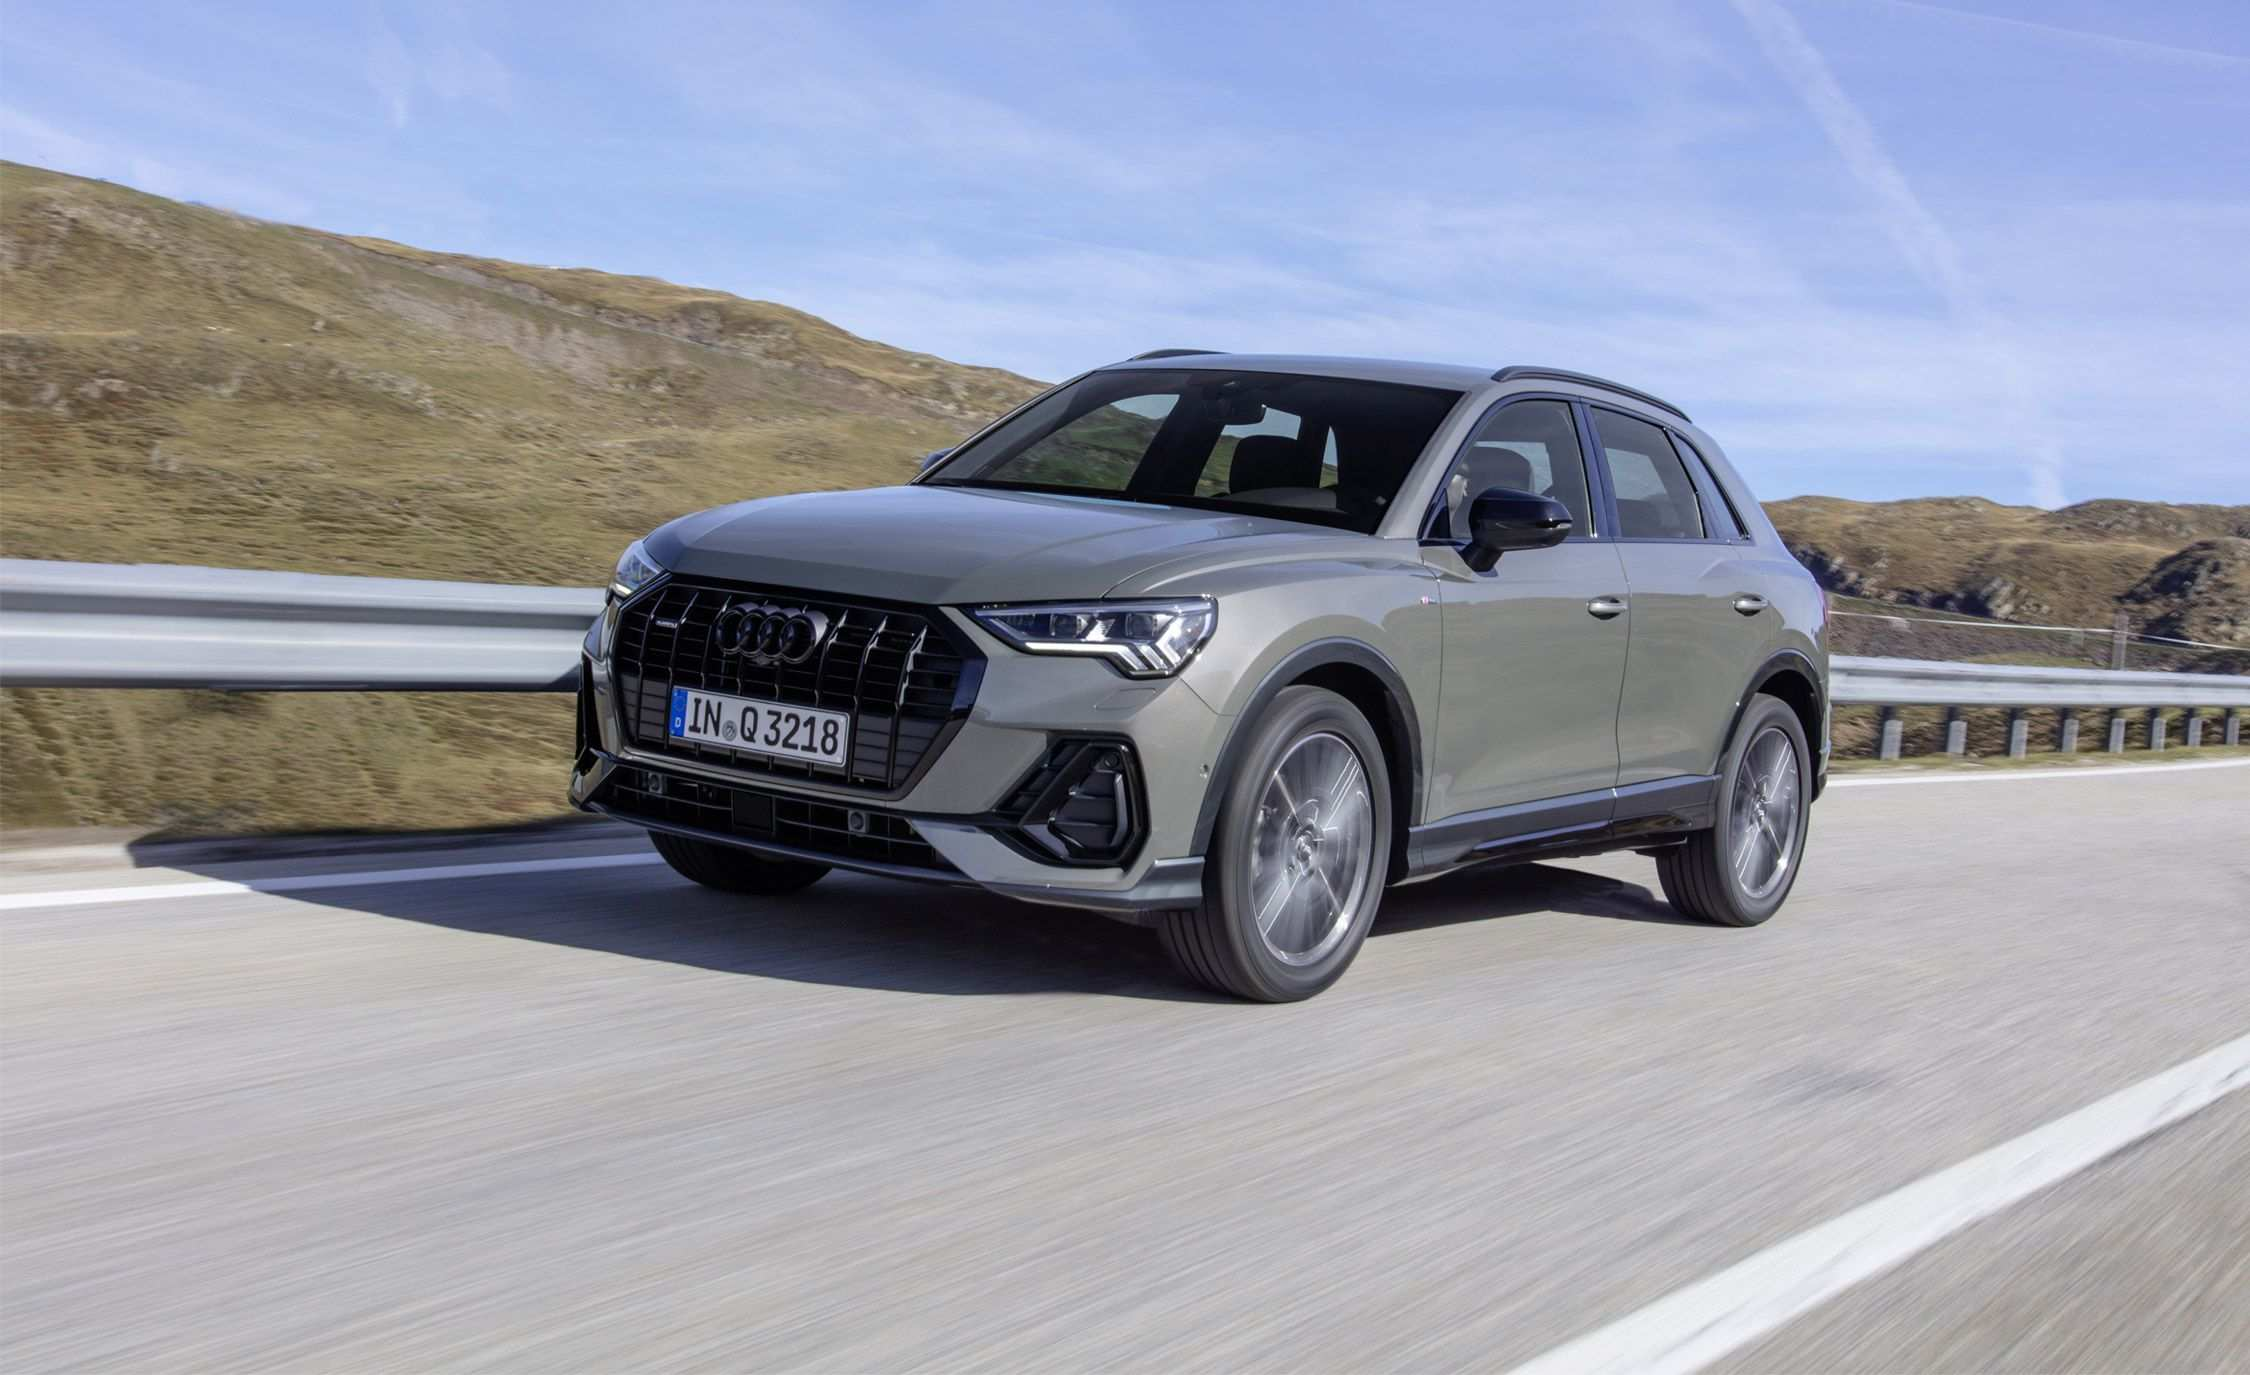 15 New 2019 Audi Q3 Vs Volvo Xc40 Release Date Redesign and Concept by 2019 Audi Q3 Vs Volvo Xc40 Release Date